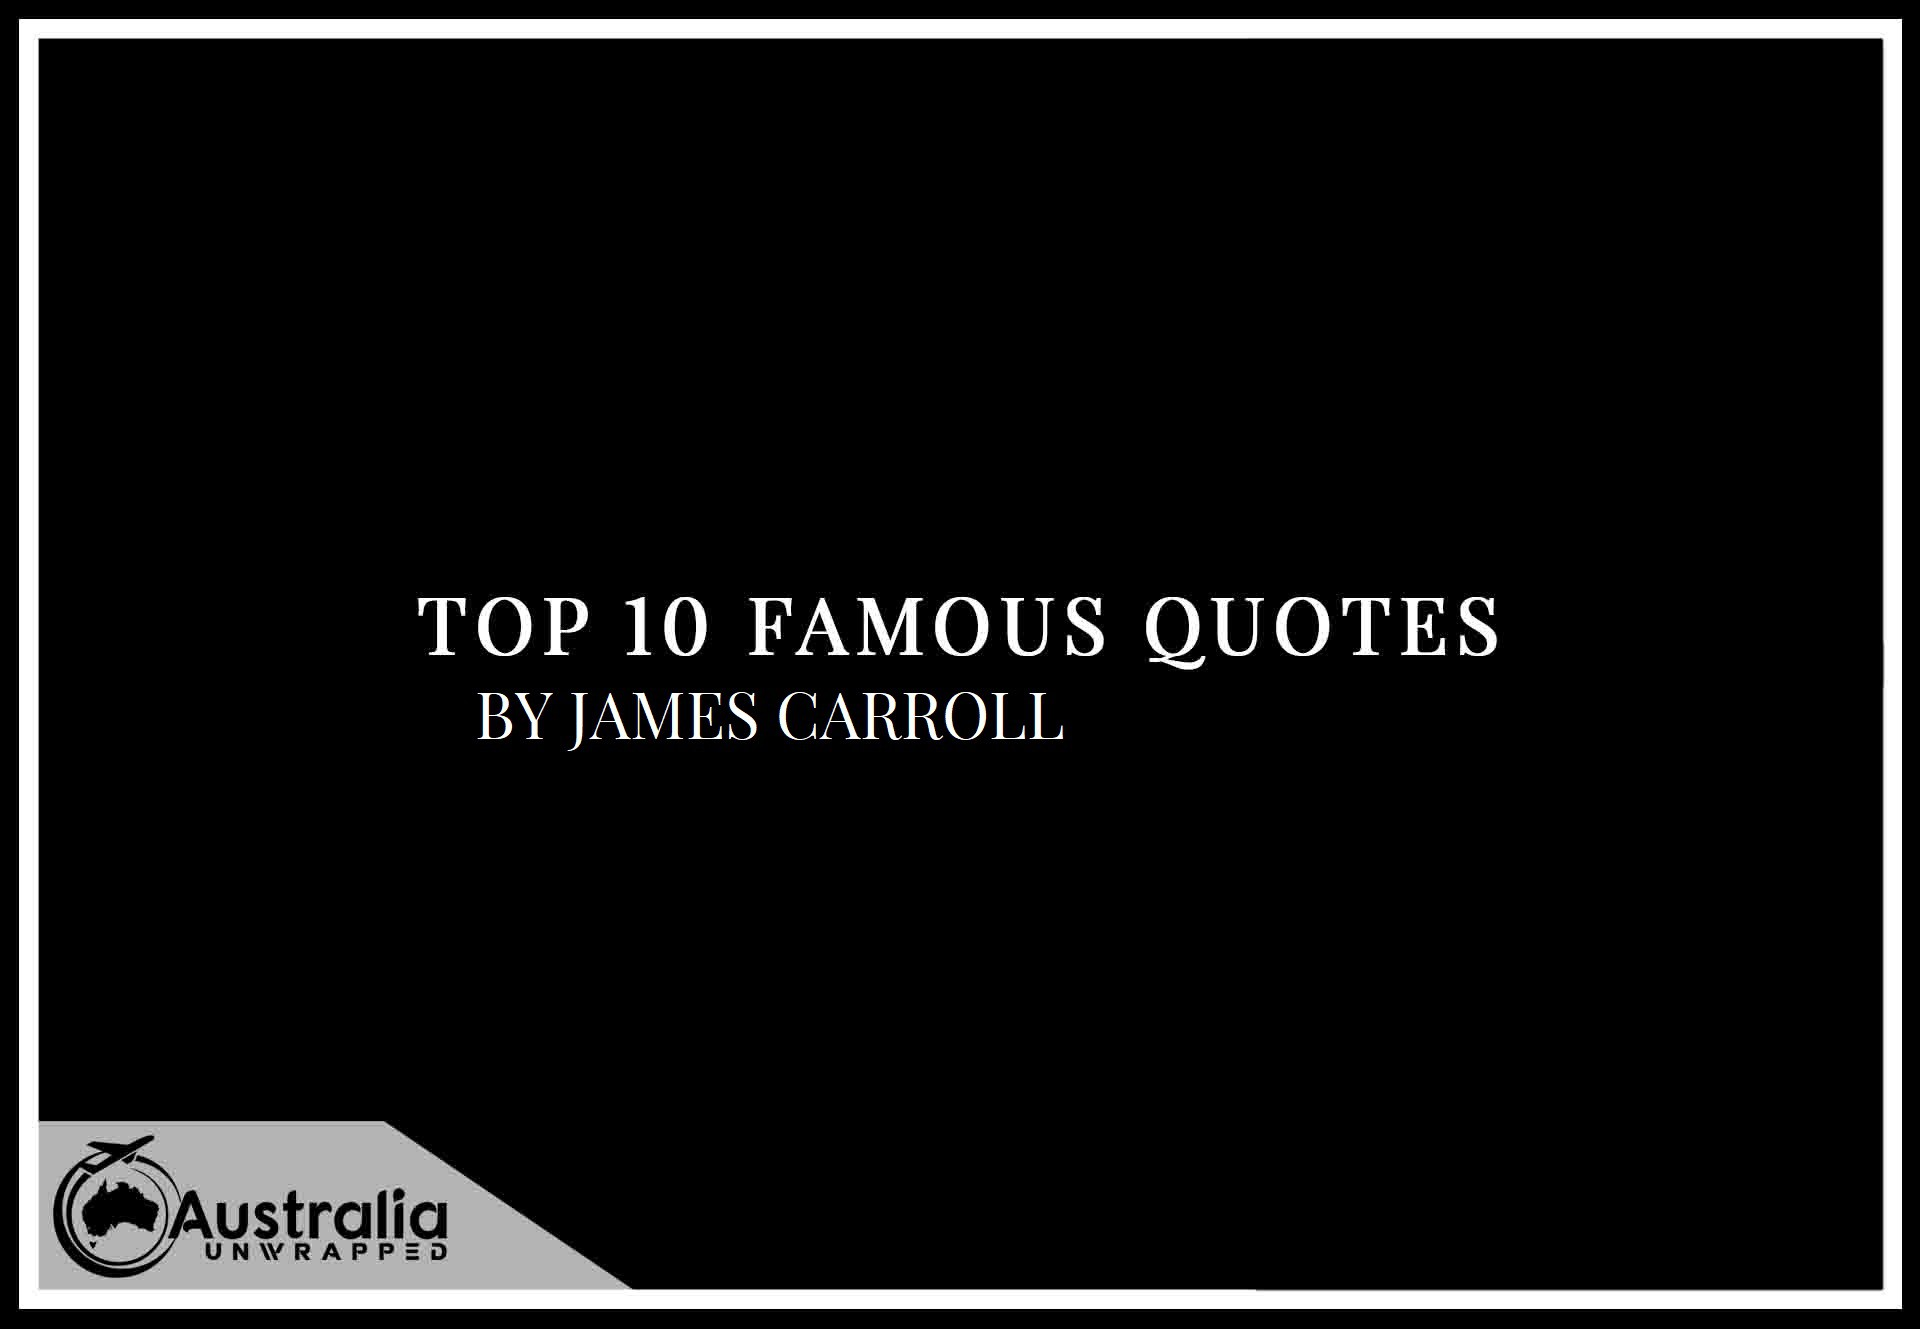 Top 10 Famous Quotes by Author James Carroll